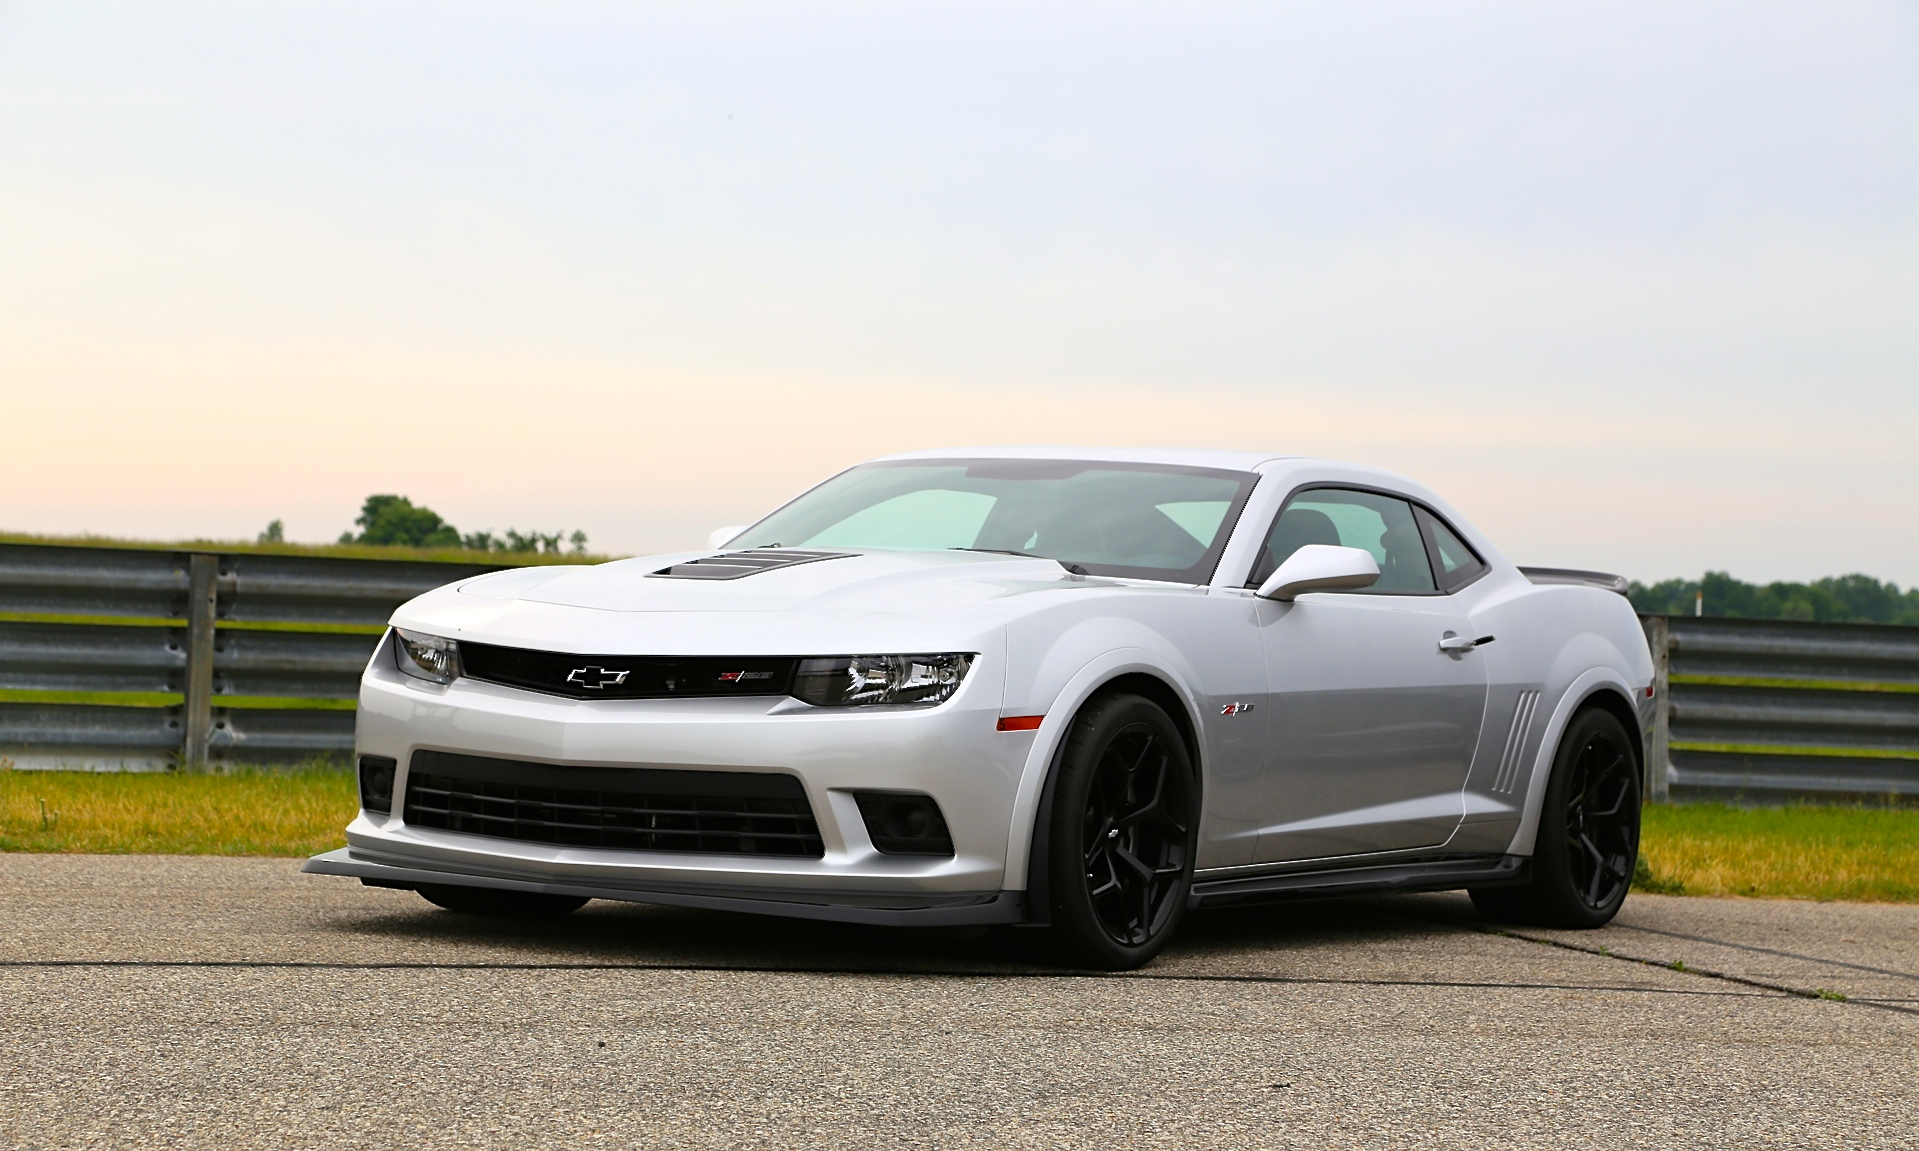 2015 chevrolet camaro z 28 first drive review. Black Bedroom Furniture Sets. Home Design Ideas